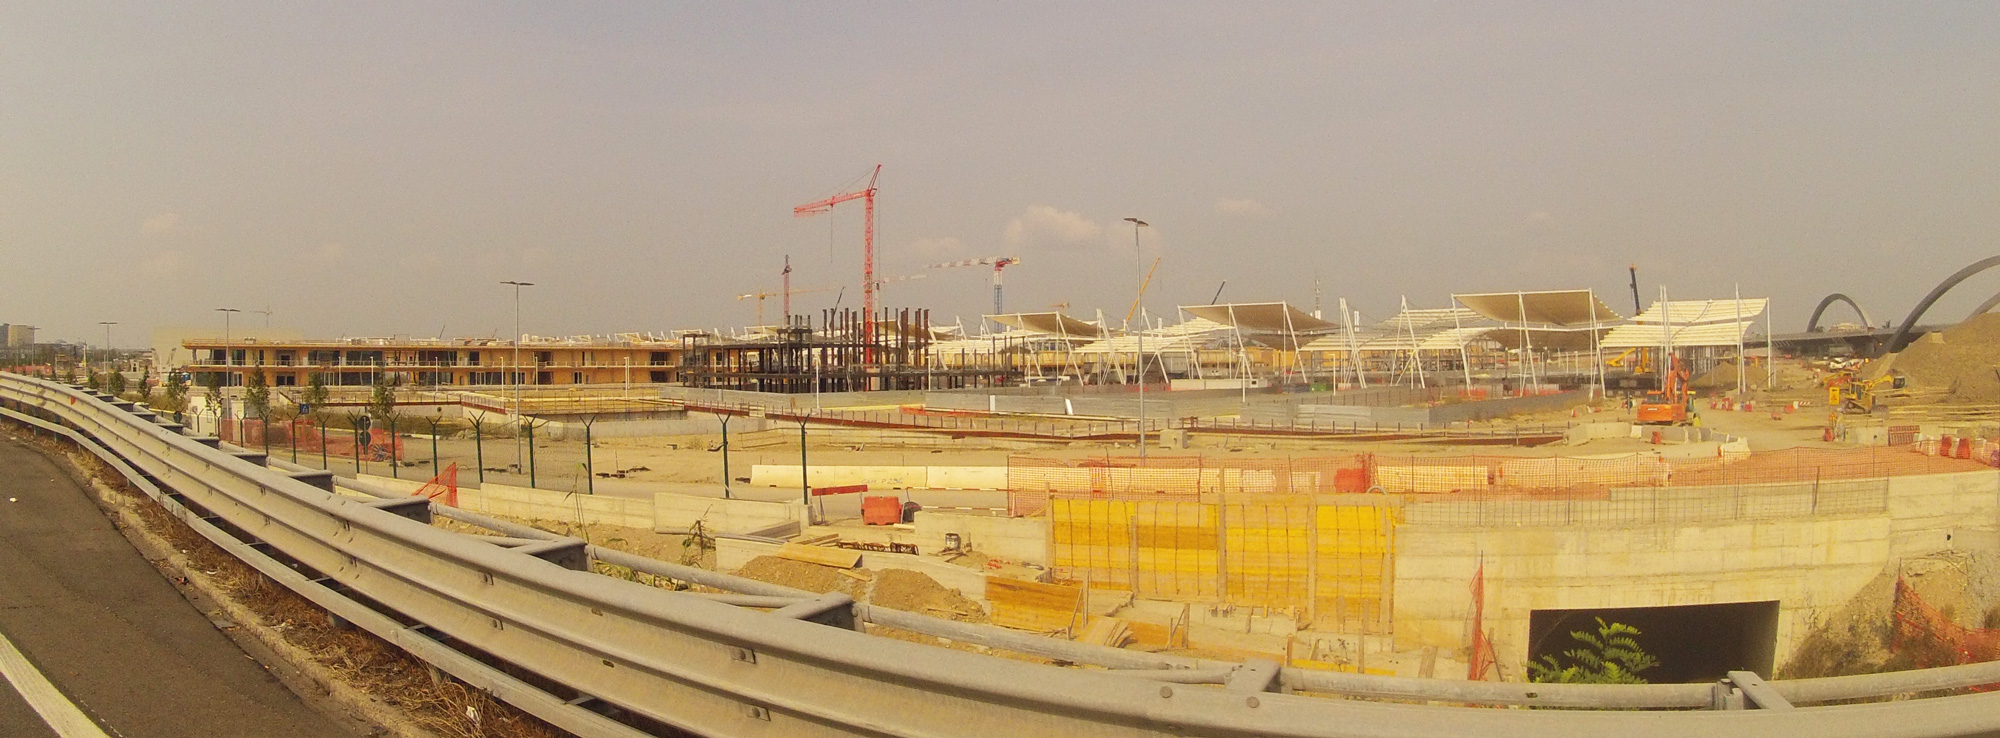 EXPO Construction site